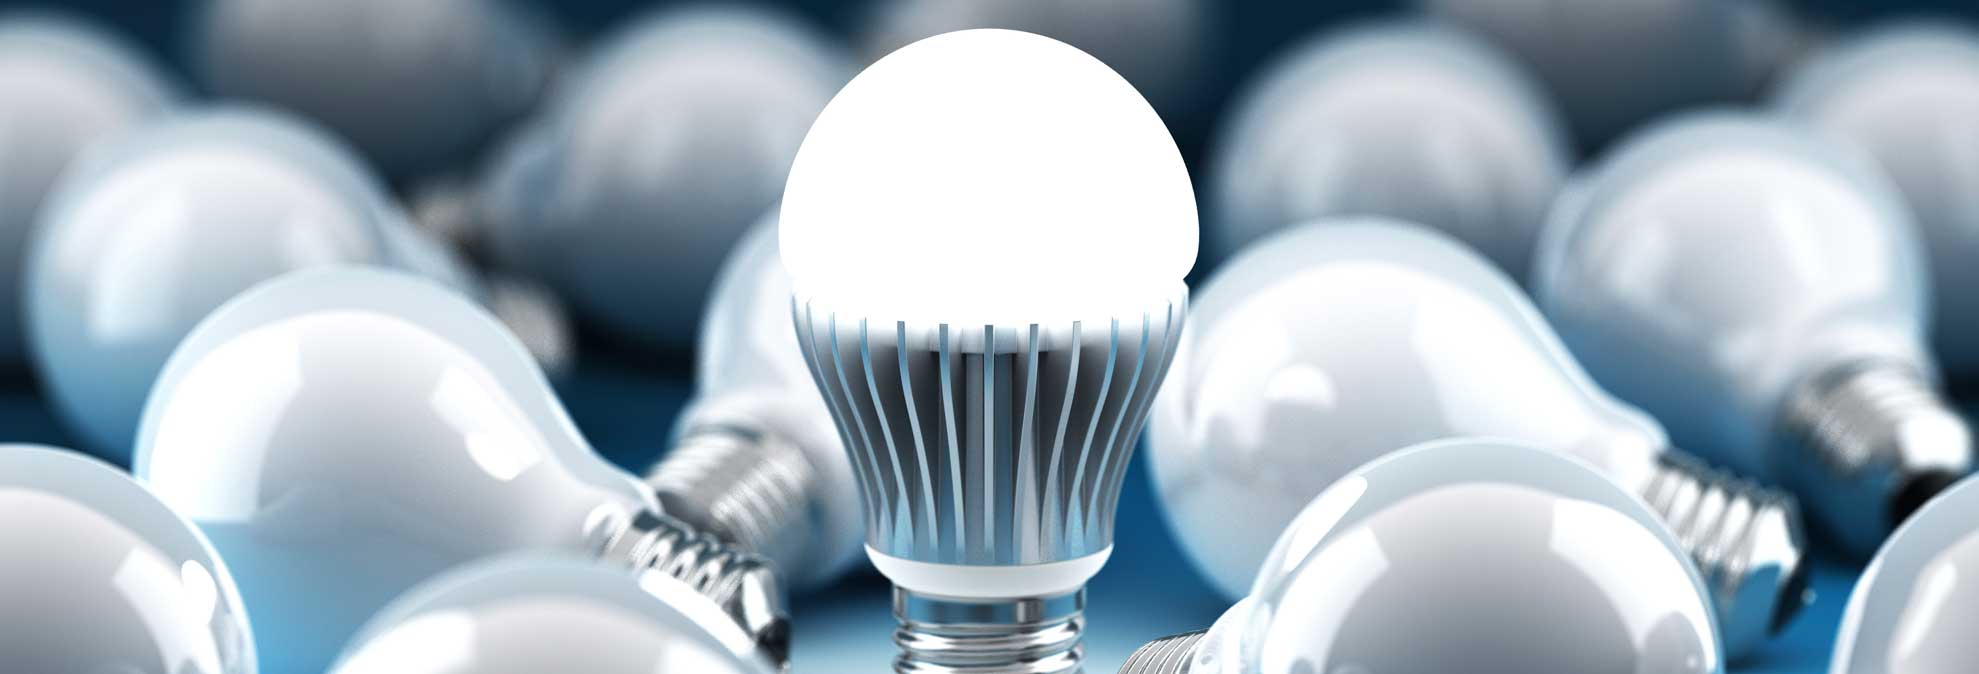 Lightbulb Buying Guide